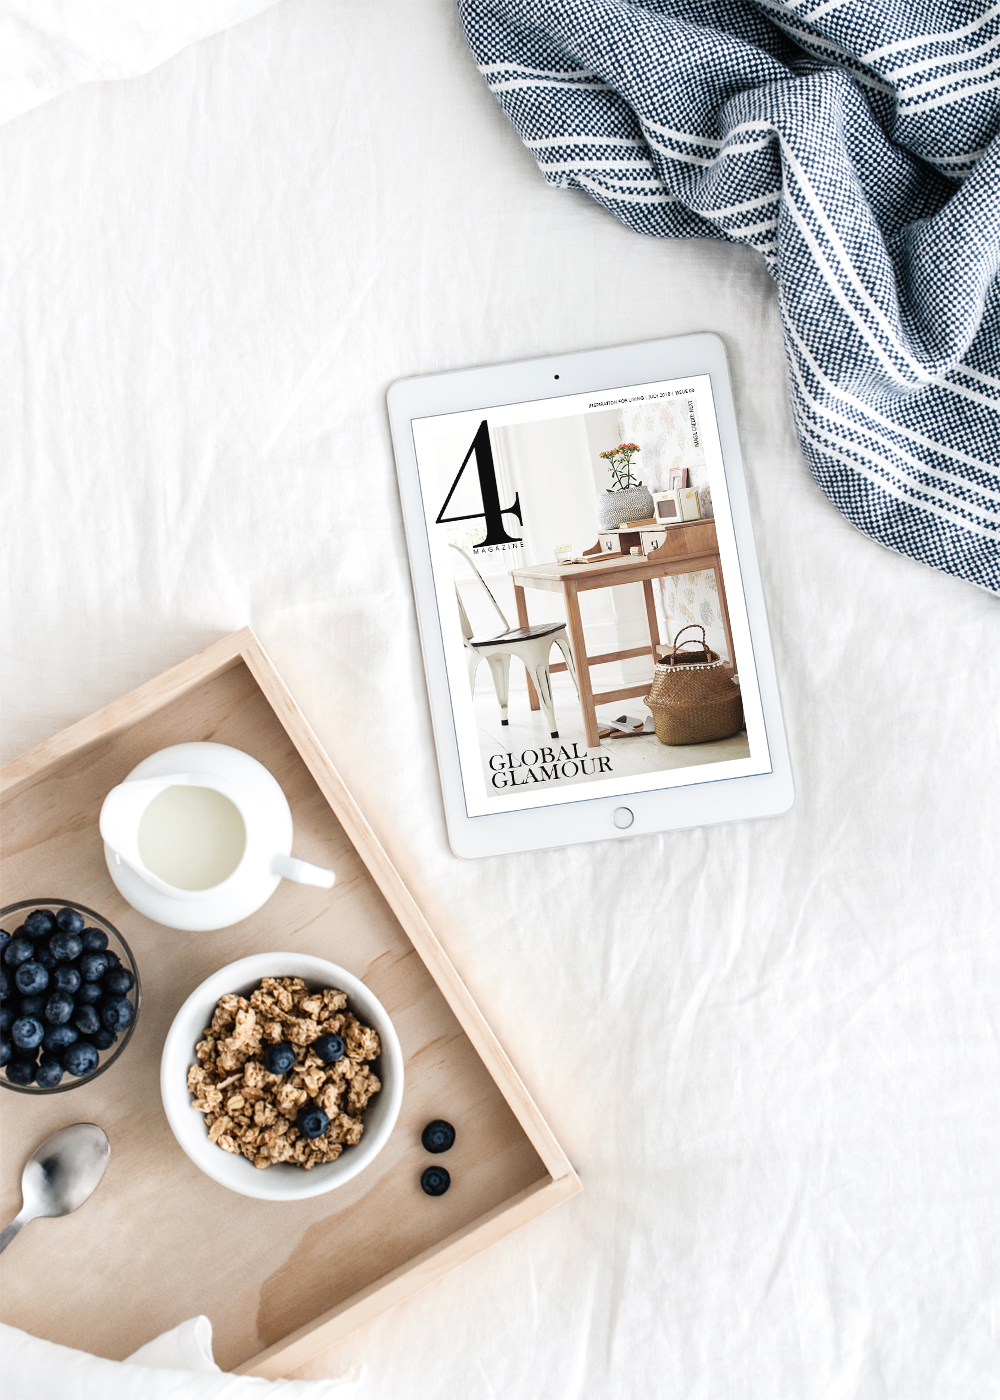 4 Magazine is a monthly interior design magazine where every product featured is directly shoppable from the page. Grab the July issue now.